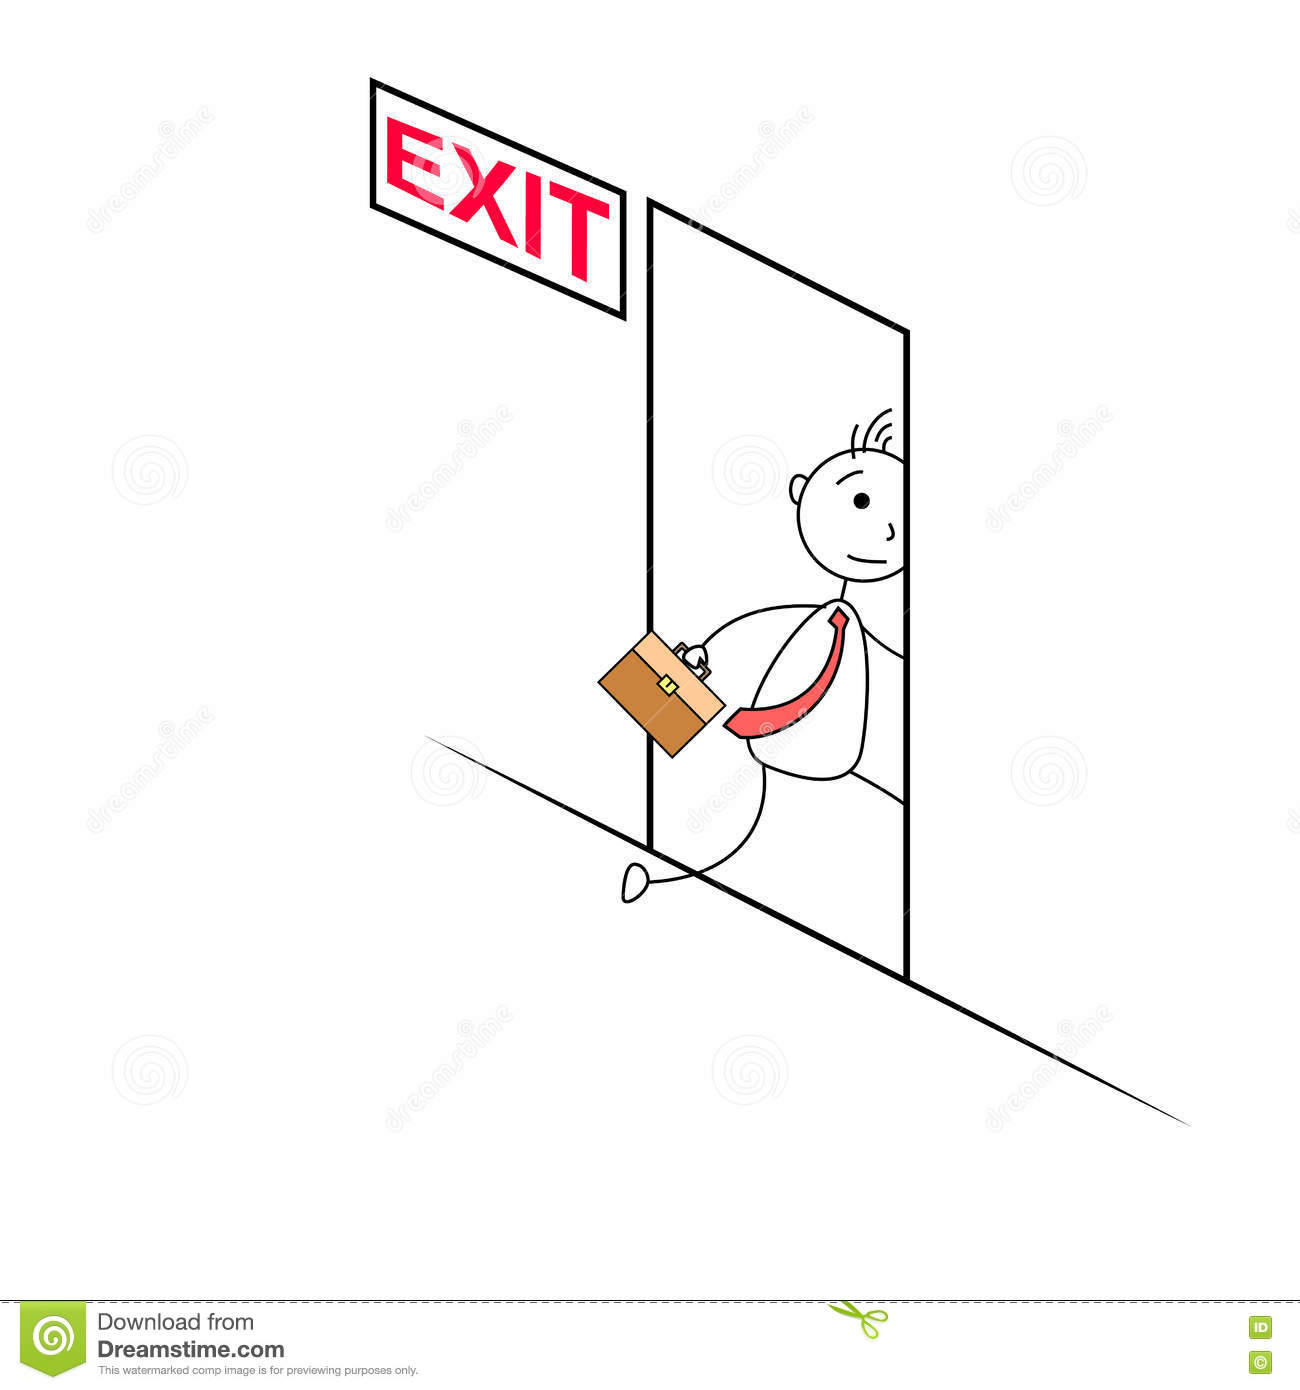 Cartoon Man Exiting Through A Door Stock Vector - Image: 73679773